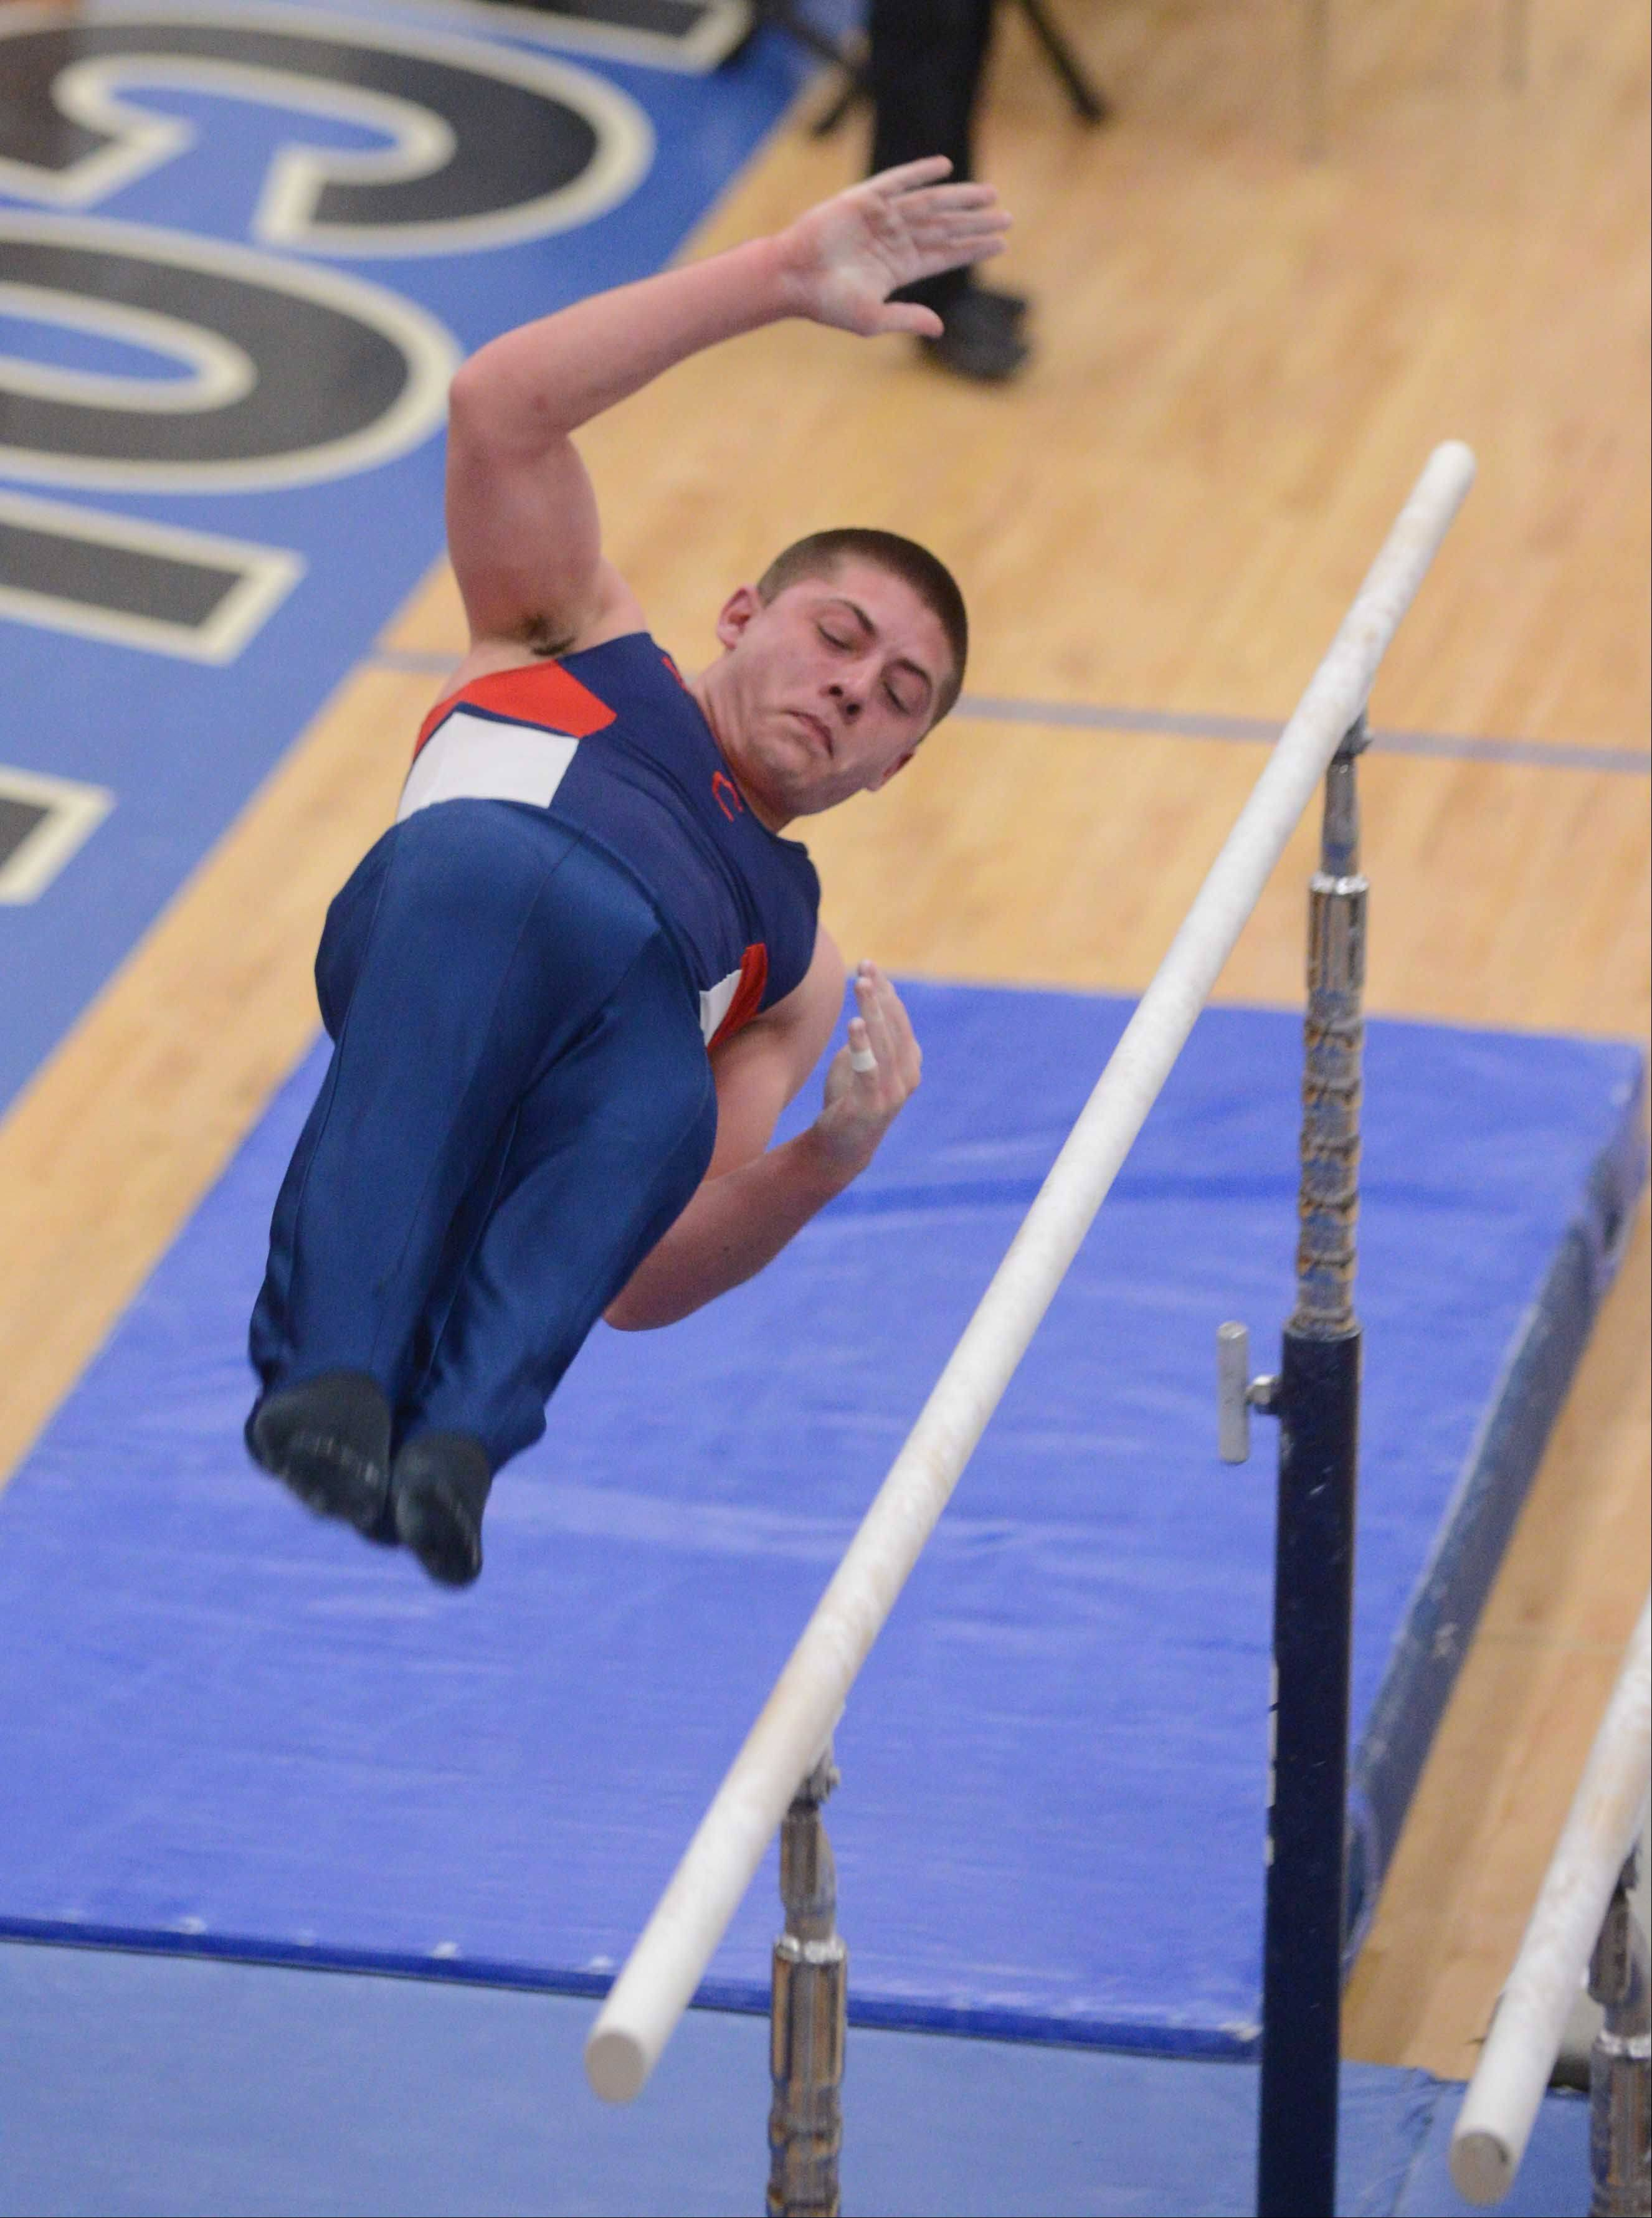 Joe Mauk of Conant performs on the parallel bars during the boys gymnastics state finals at Lincoln-Way East on Saturday.